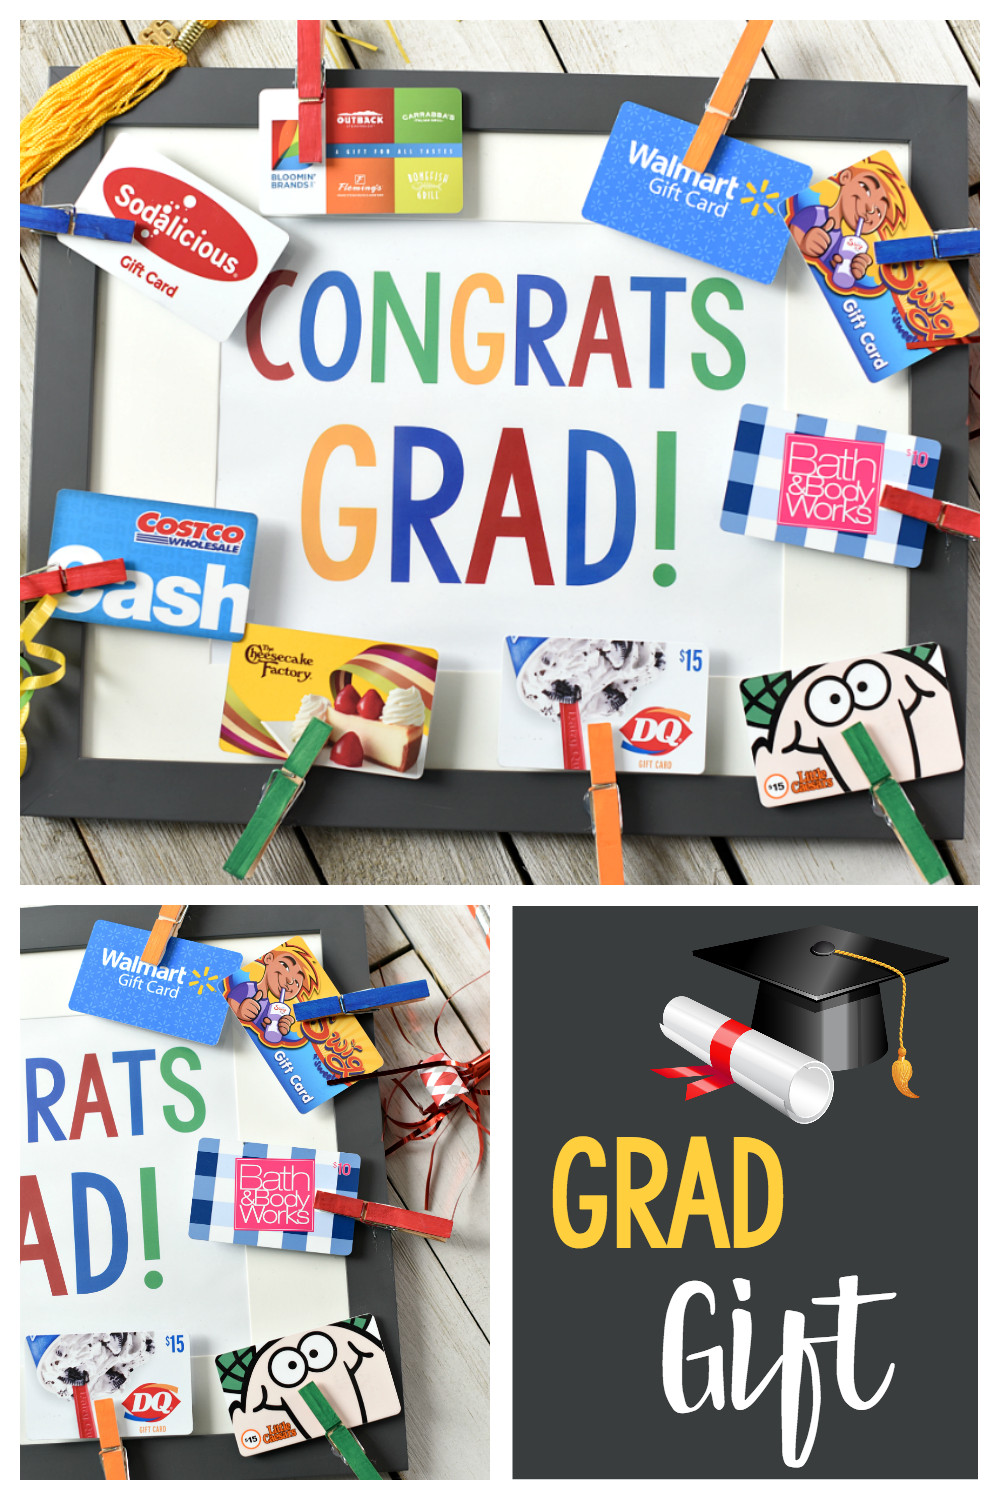 High School Graduation Gift Ideas For Her  Cute Graduation Gifts Congrats Grad Gift Card Frame – Fun